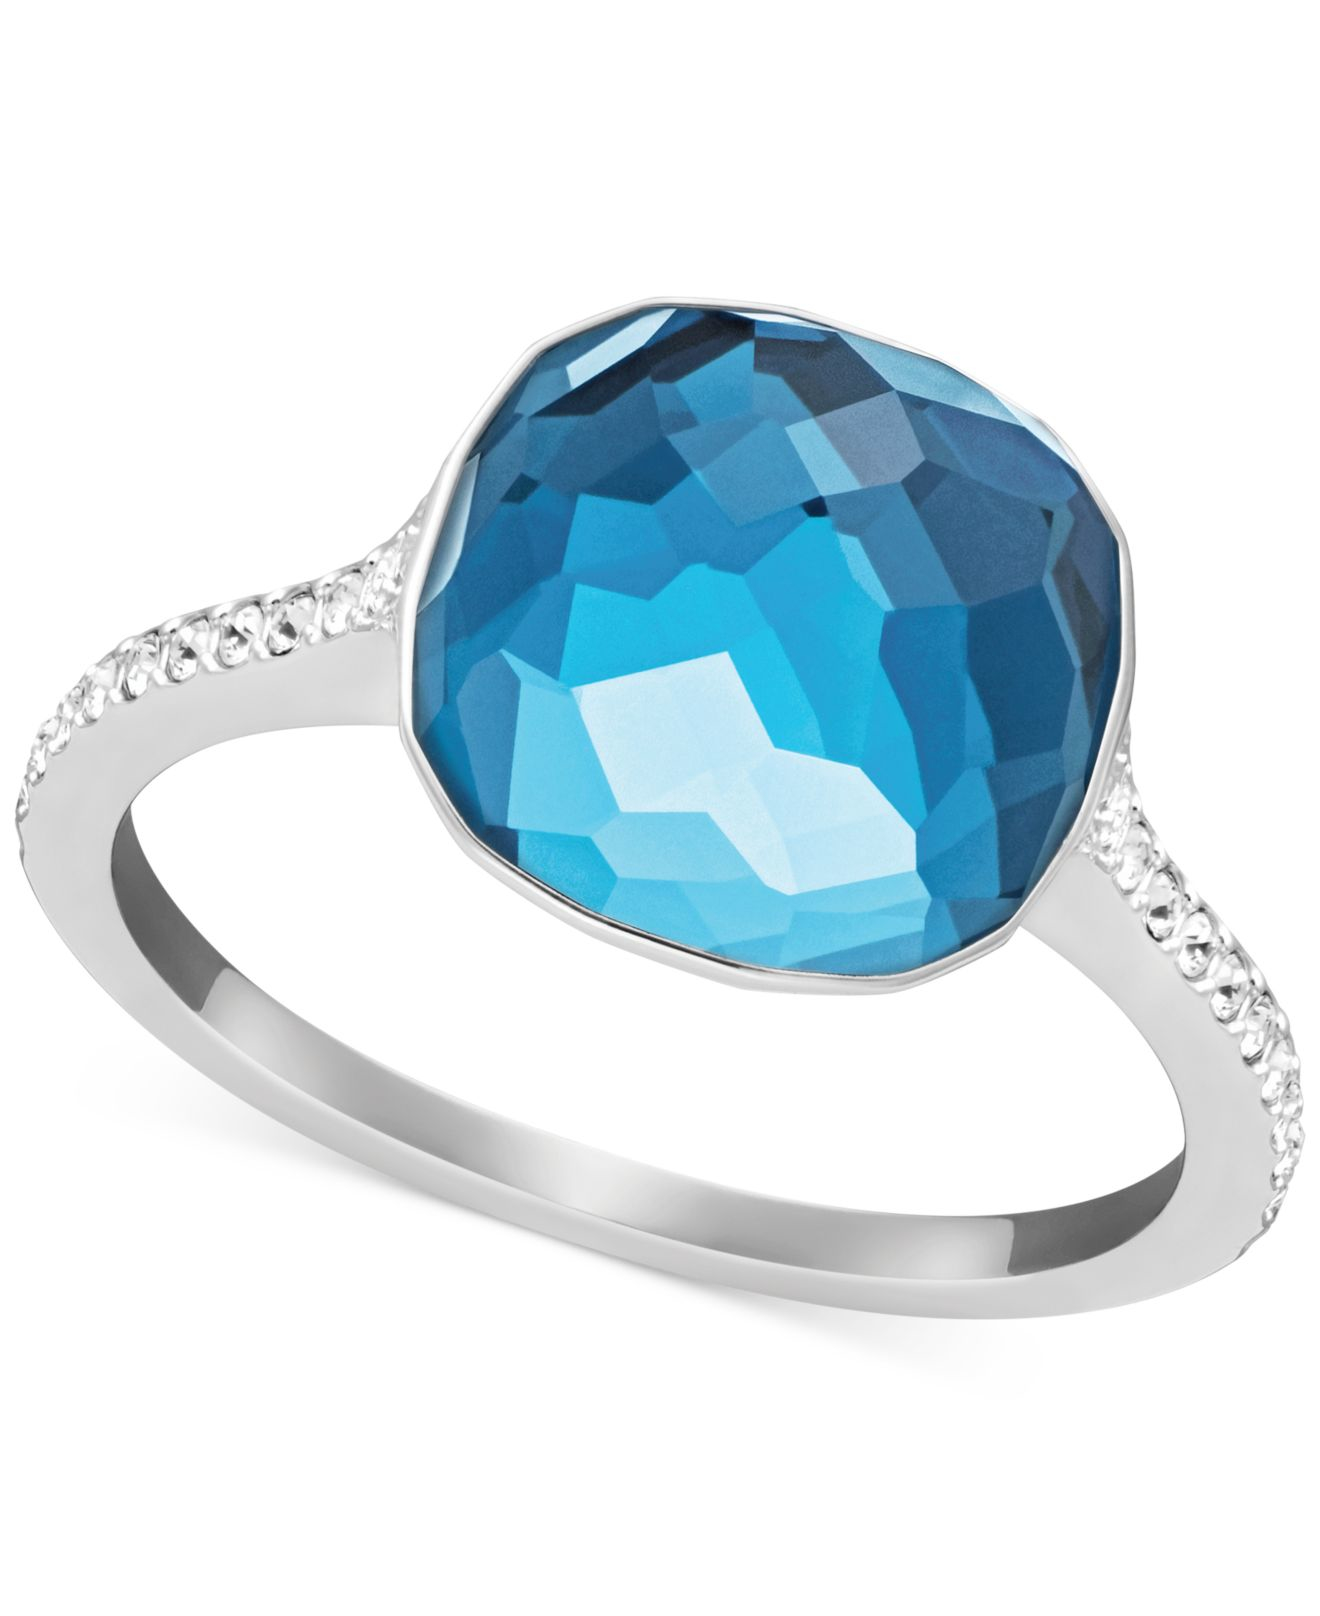 9ca686a41 Lyst - Swarovski Silver-tone Blue Faceted Crystal Ring in Blue